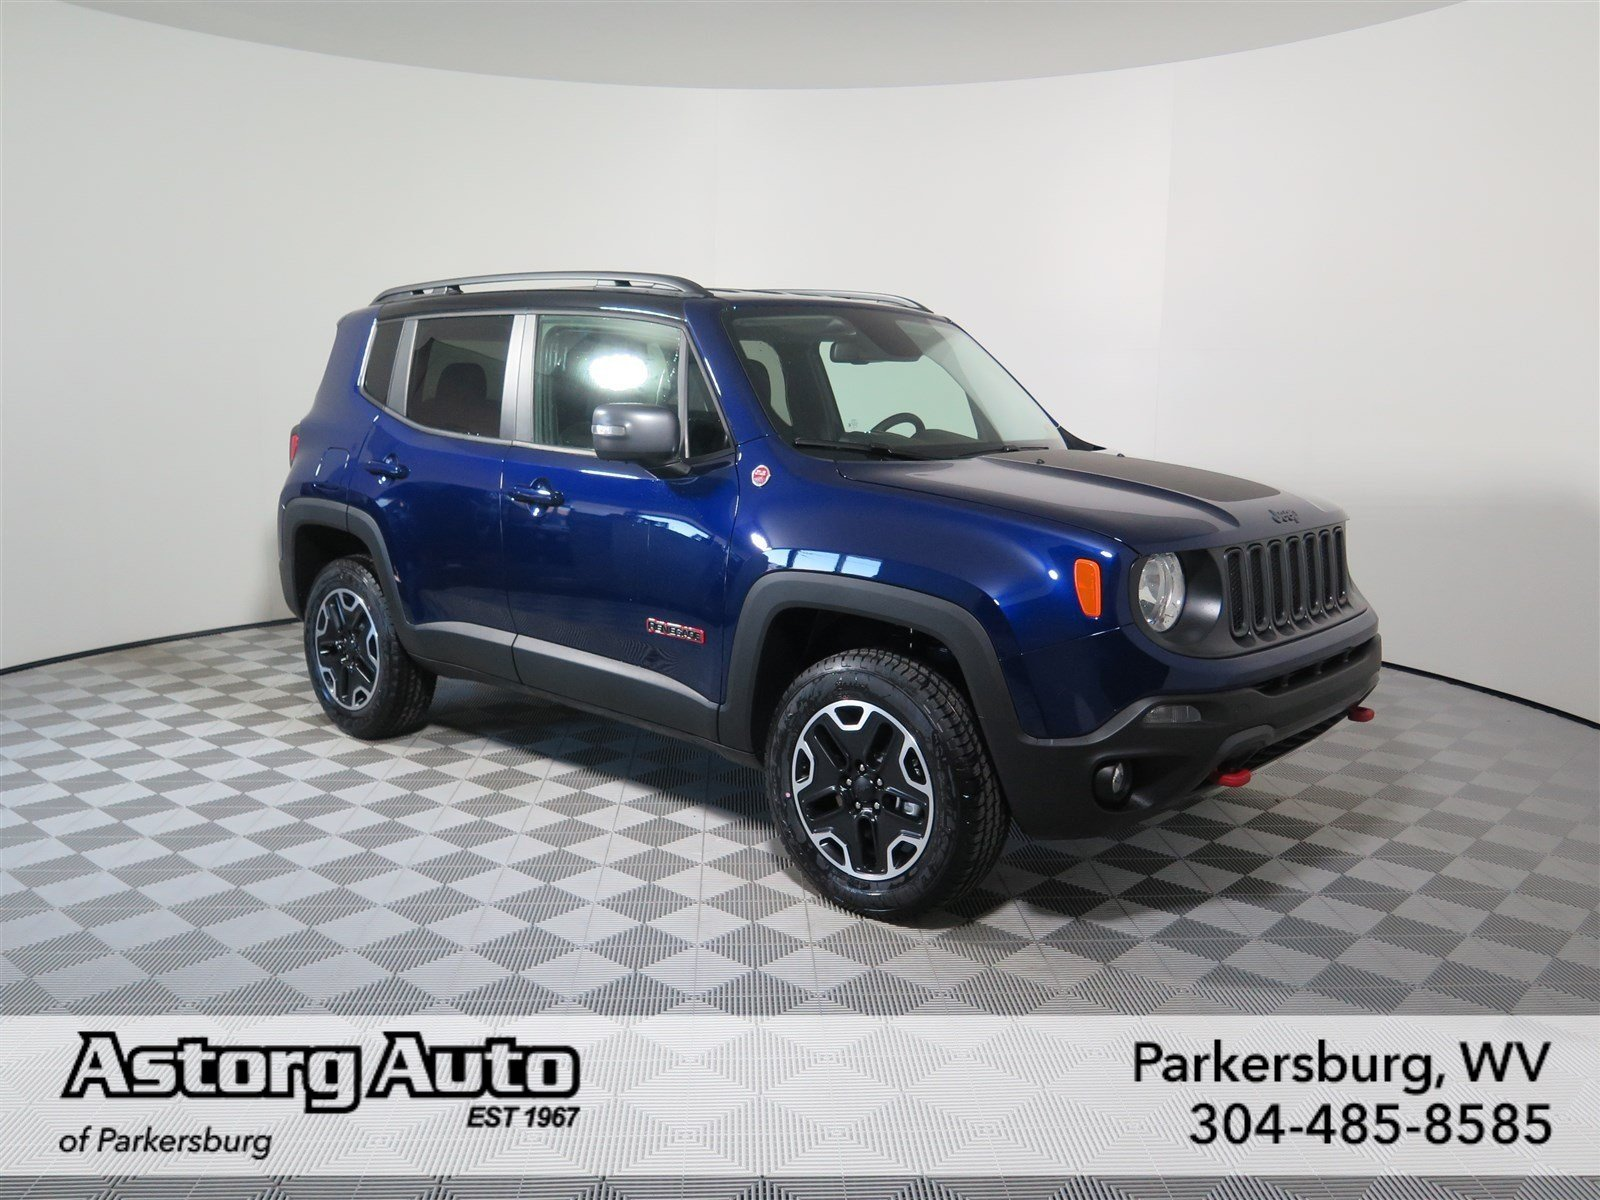 new 2017 jeep renegade trailhawk sport utility in parkersburg d6169 astorg auto. Black Bedroom Furniture Sets. Home Design Ideas